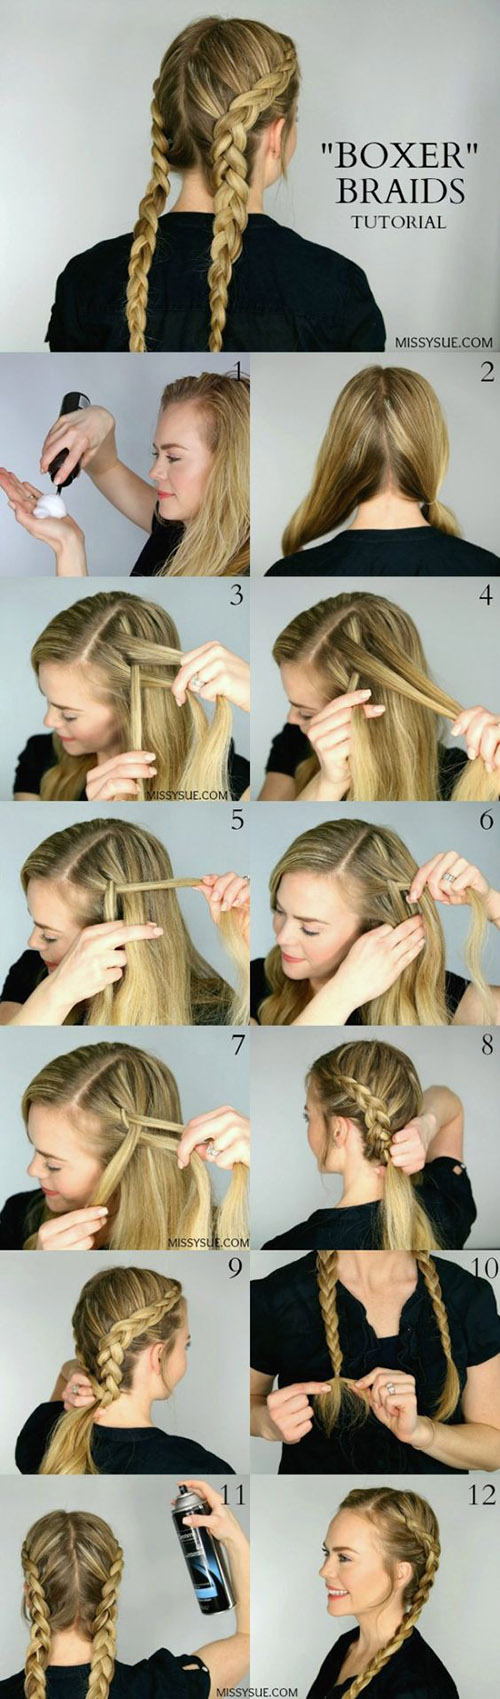 3 boxer-braids-tutorial01583